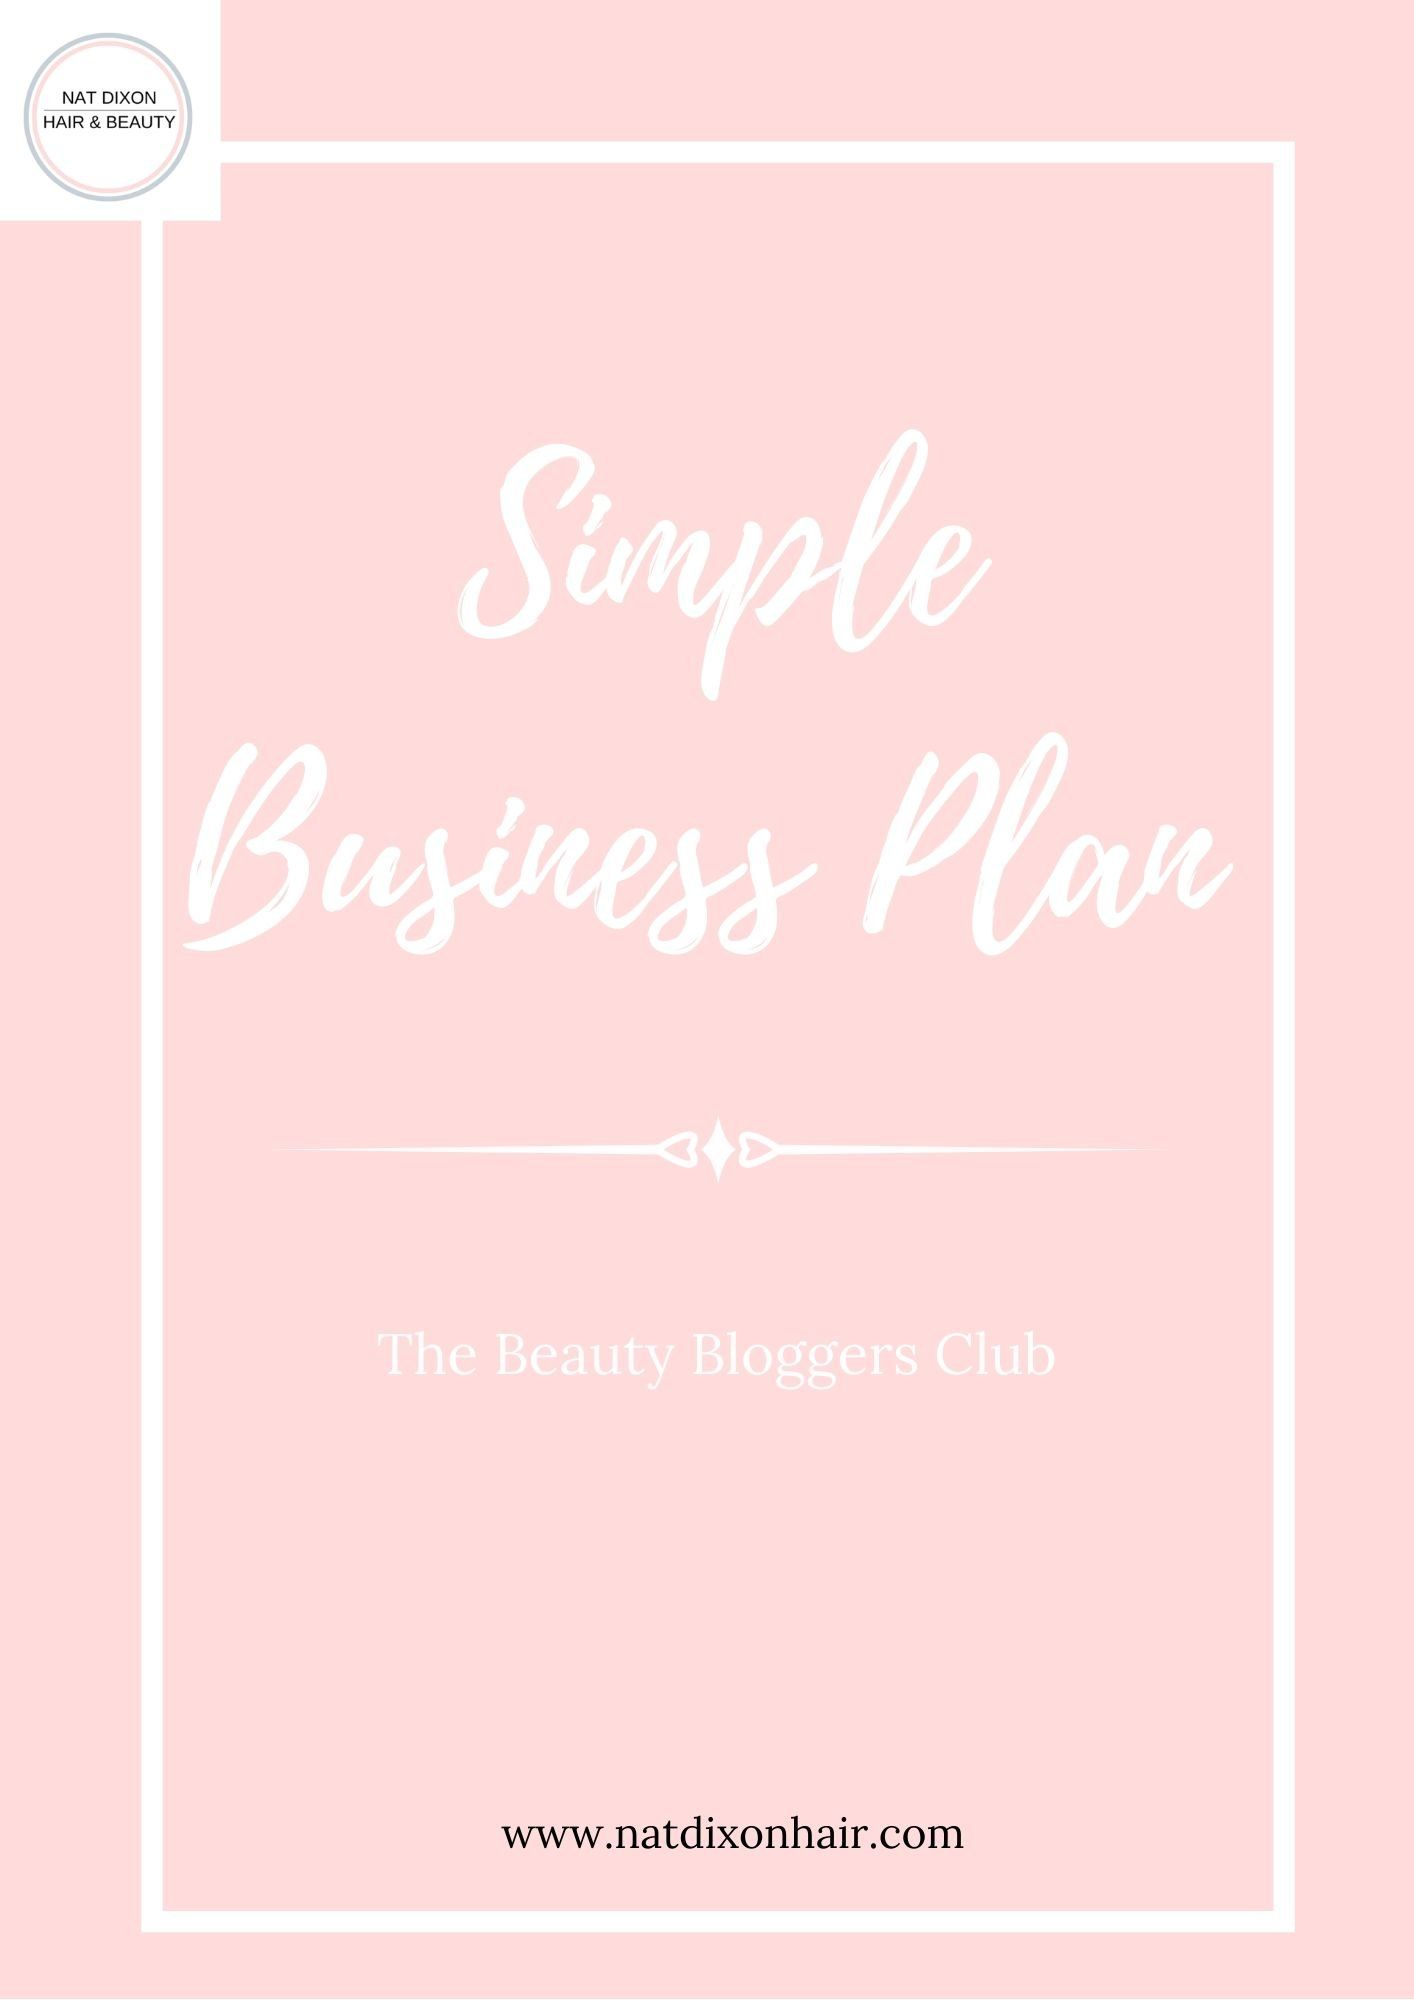 Simple Business Plan A business plan template to help new